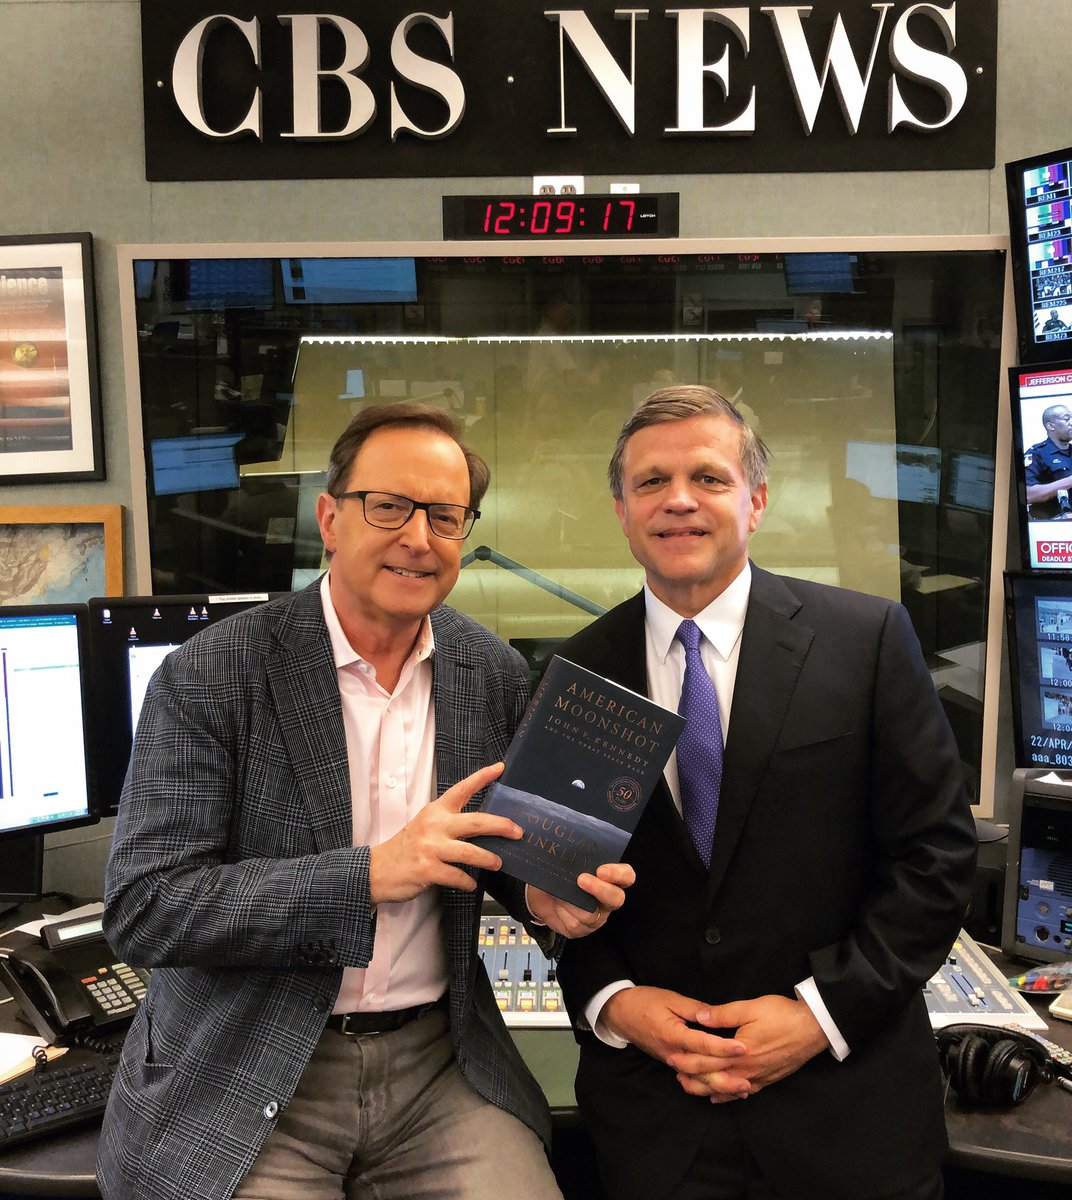 """A conversation w/@ProfDBrinkley on his fascinating book """"American Moonshot: John F Kennedy & the Great Space Race"""" - tmrw on the @CBSThisMorning Podcast!"""